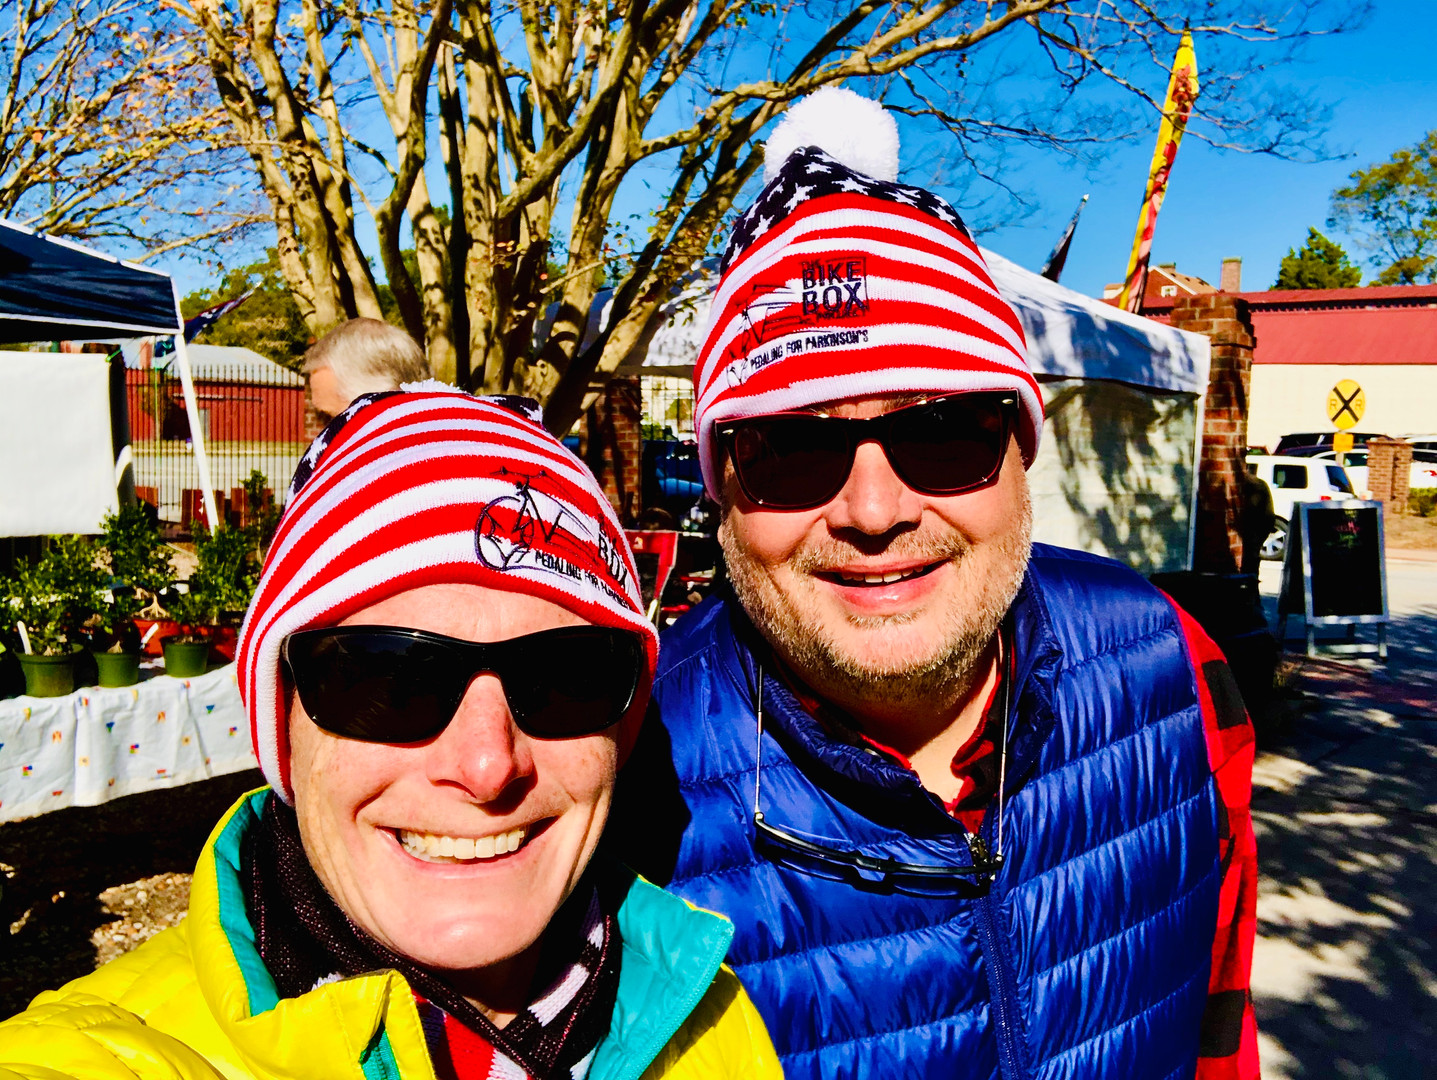 Red, White, and Blue knit cap